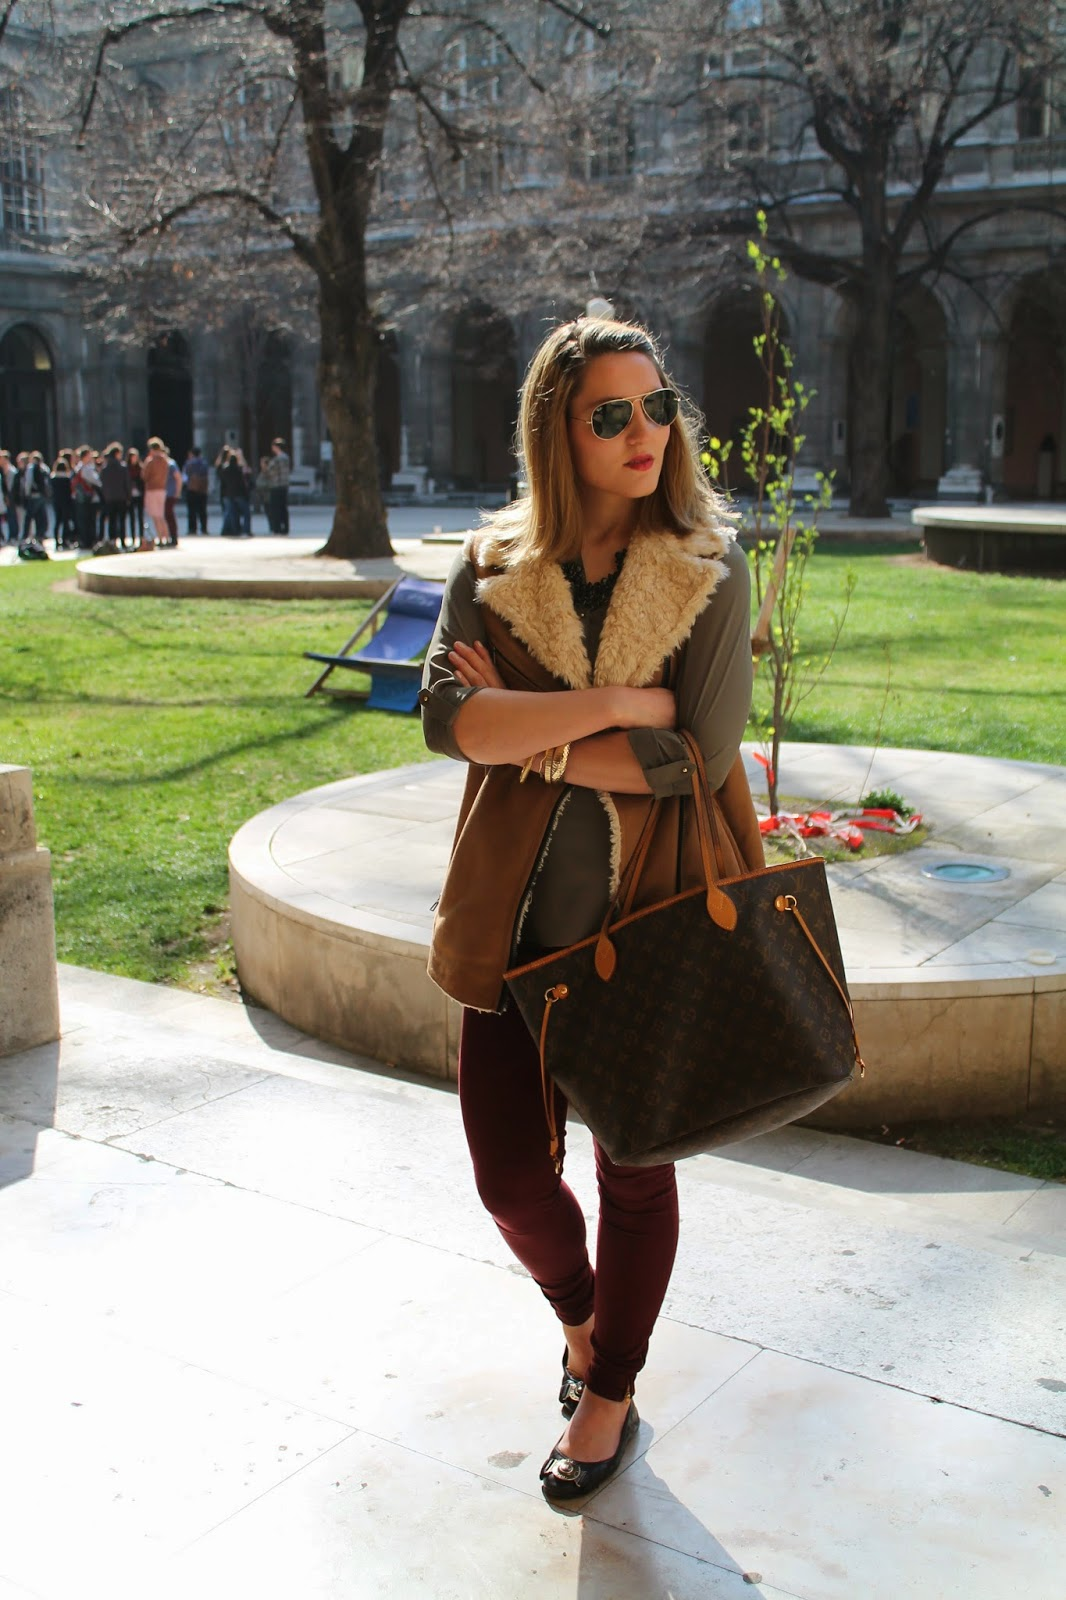 Fashionblogger Austria Österreich Carinthia Kärnten Klagenfurt Wien Vienna Style Streetstyle Uni Wien Atrium Spring Style Collection Frühling Ray Ban Lavender Star Svetlana Forever 18 Zara Vest Louis Vuitton Neverfull Monogramm GM